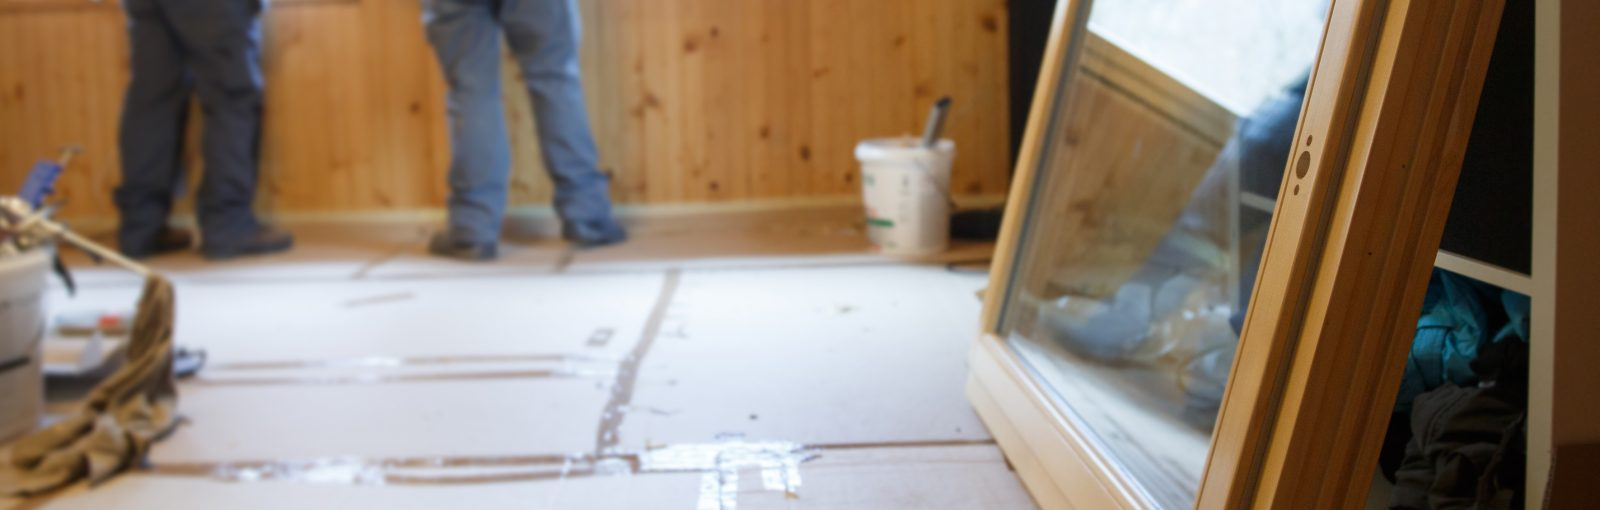 Preparing a home in New Jersey for window replacement and new window replacement.